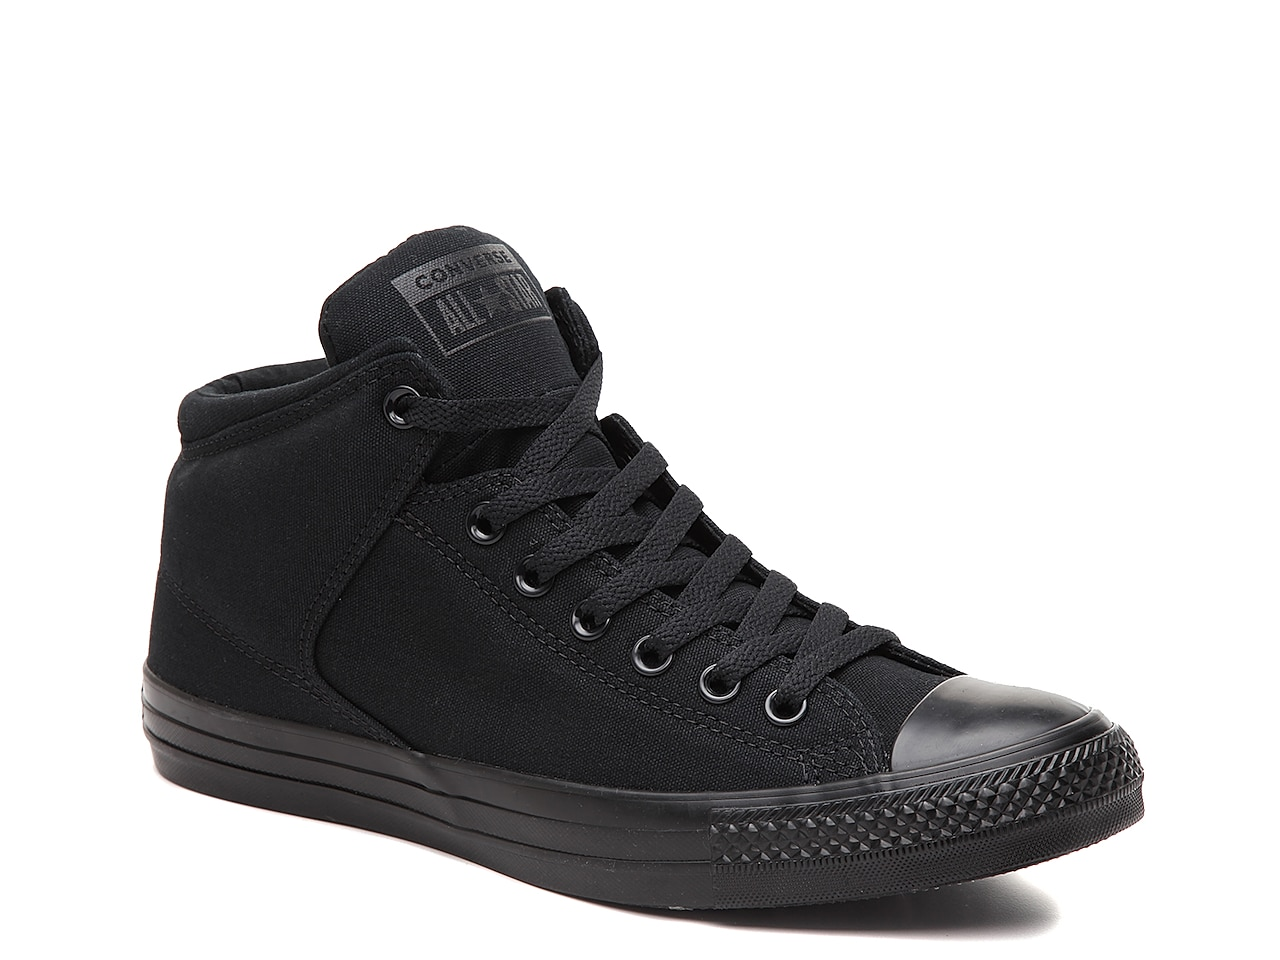 Chuck Taylor All Star Street High-Top Sneaker - Men's